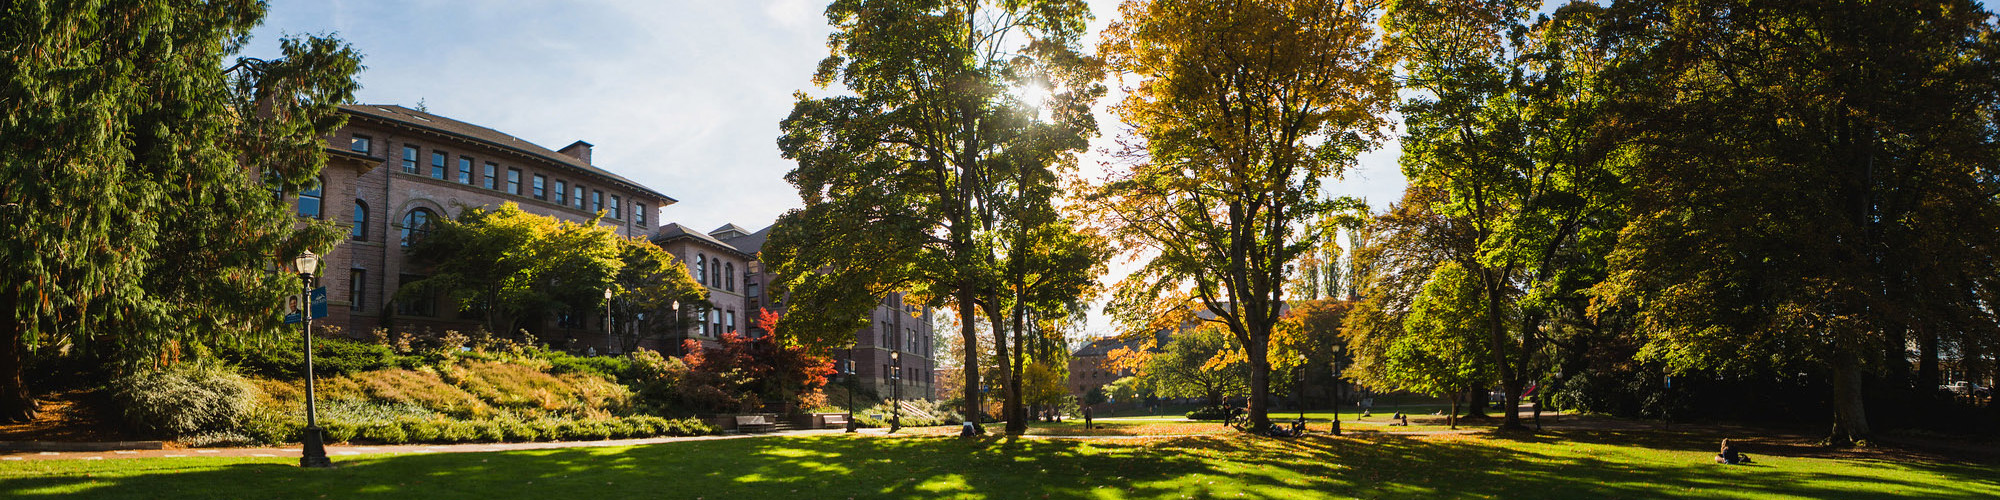 Lawn in front of Old Main during summer with sun shining through trees